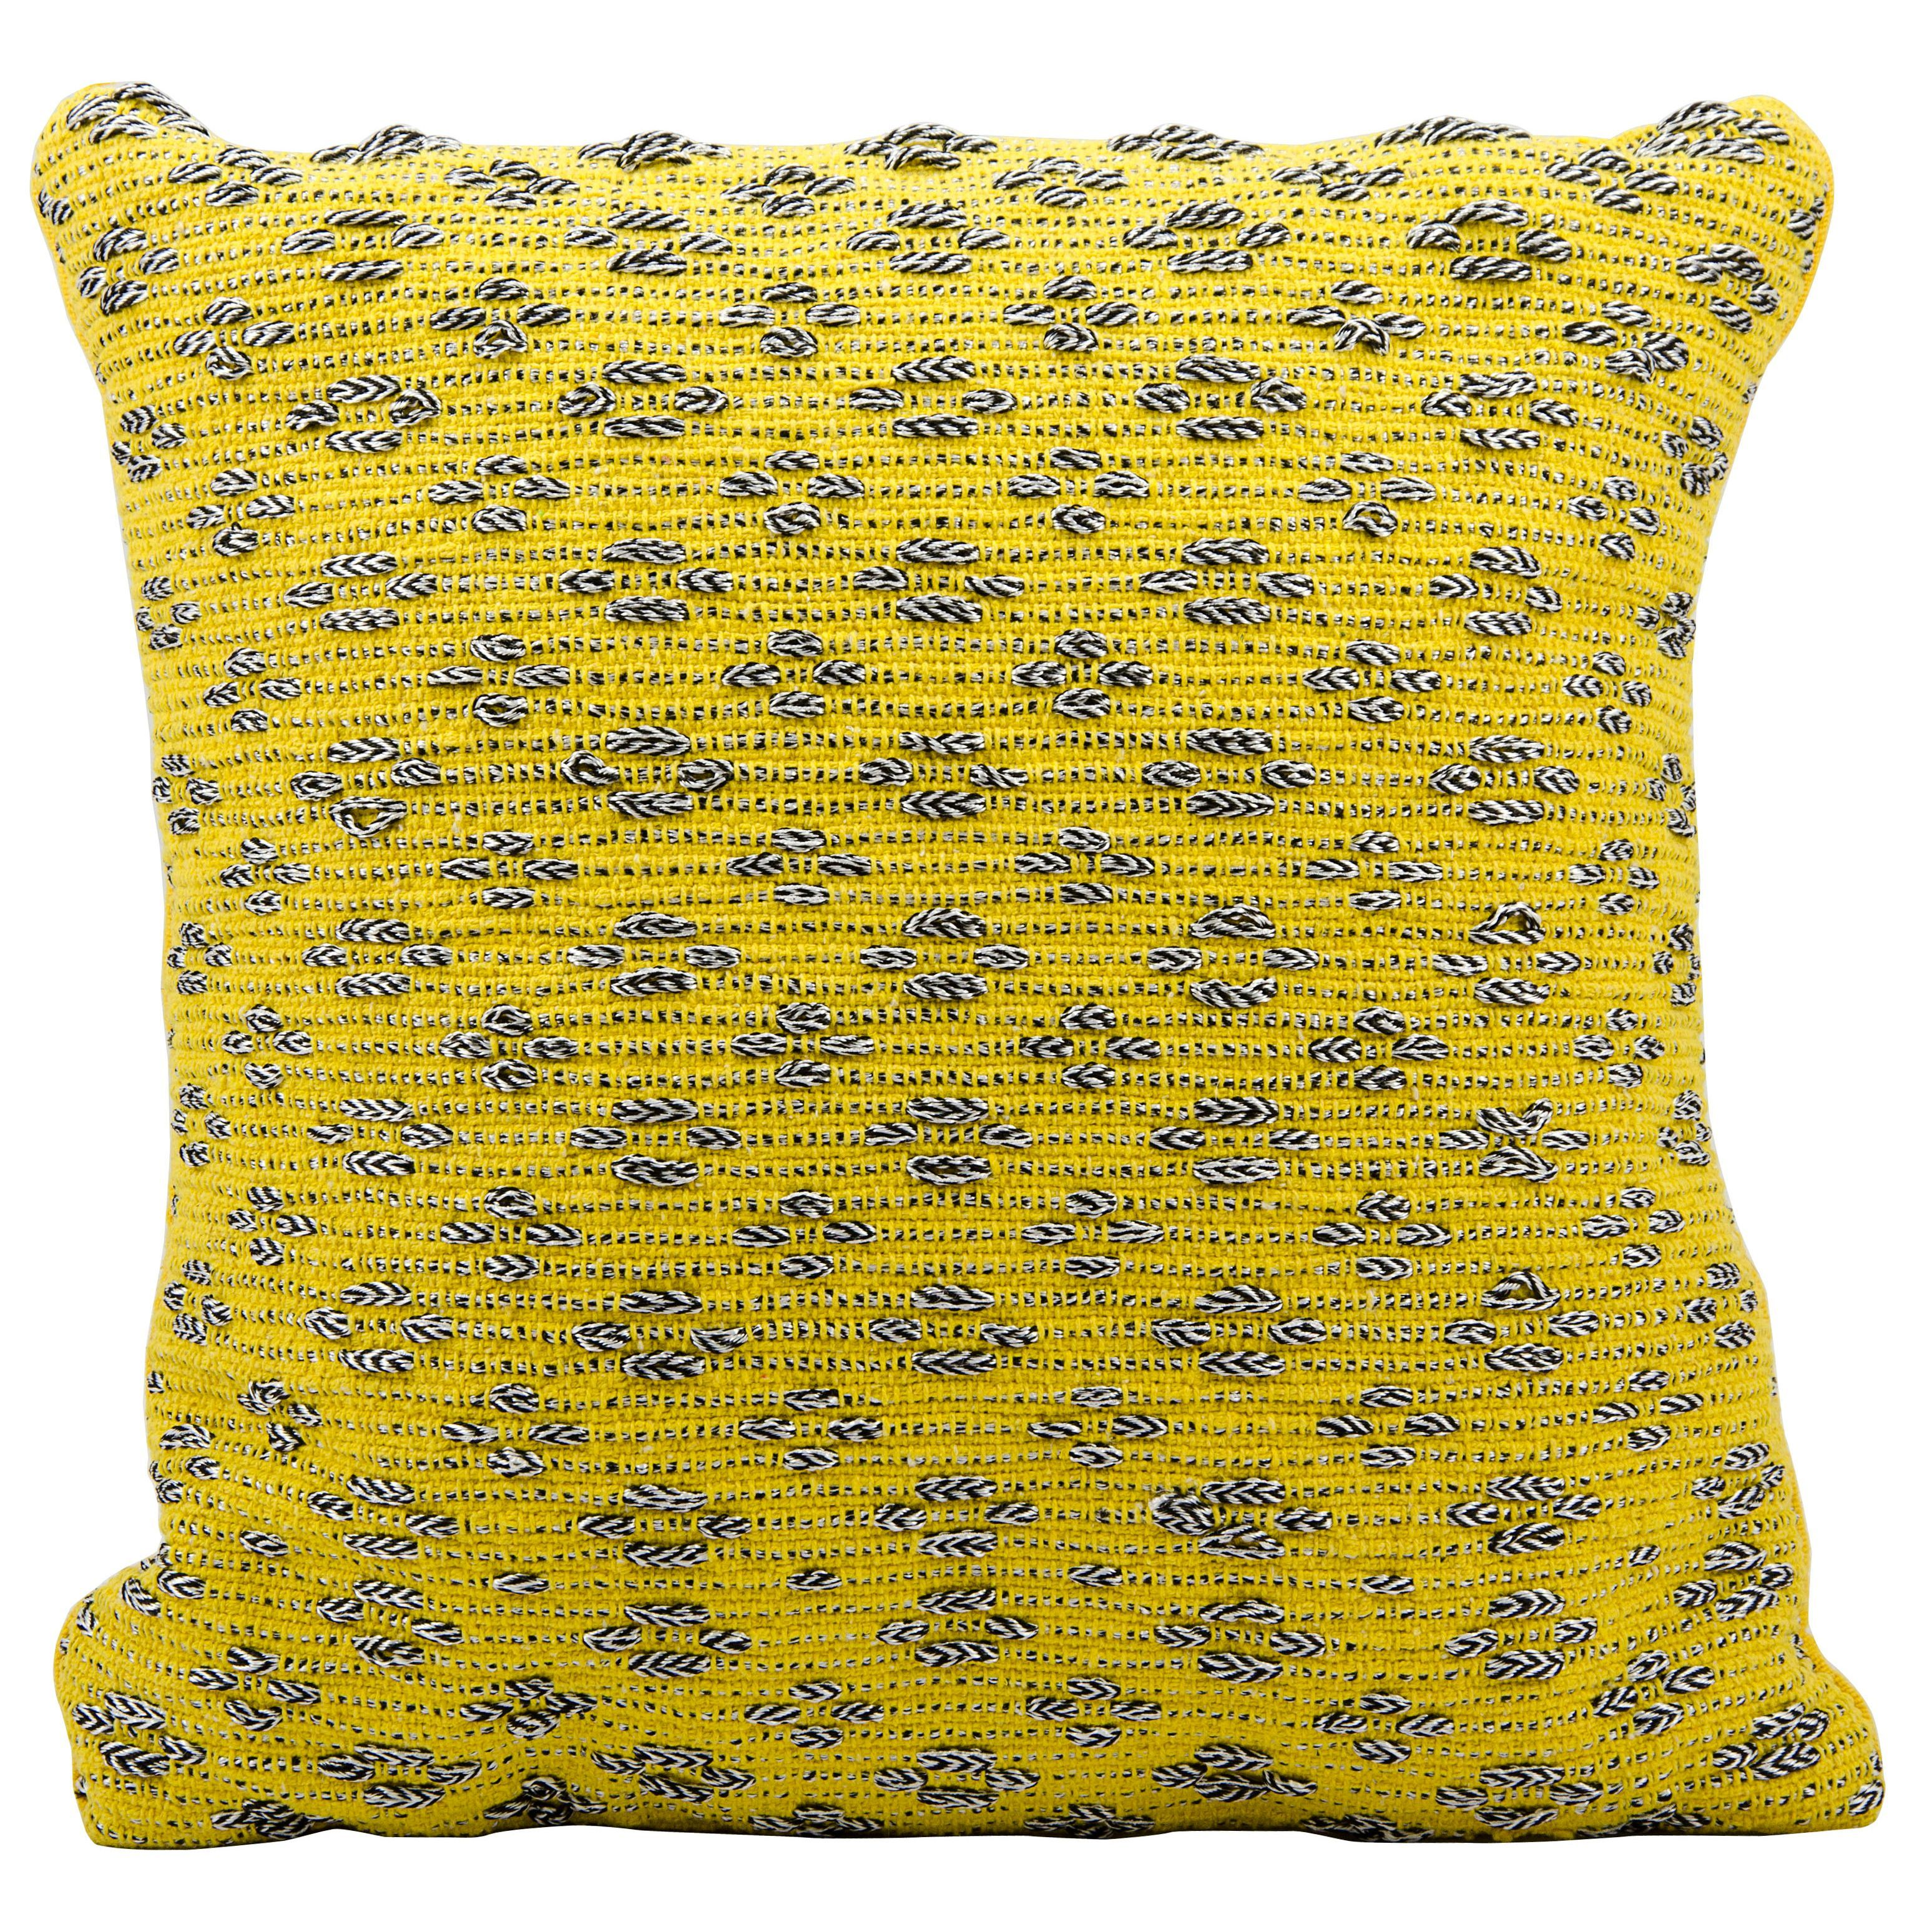 Mina victory woven luster tania yellow throw pillow inch x